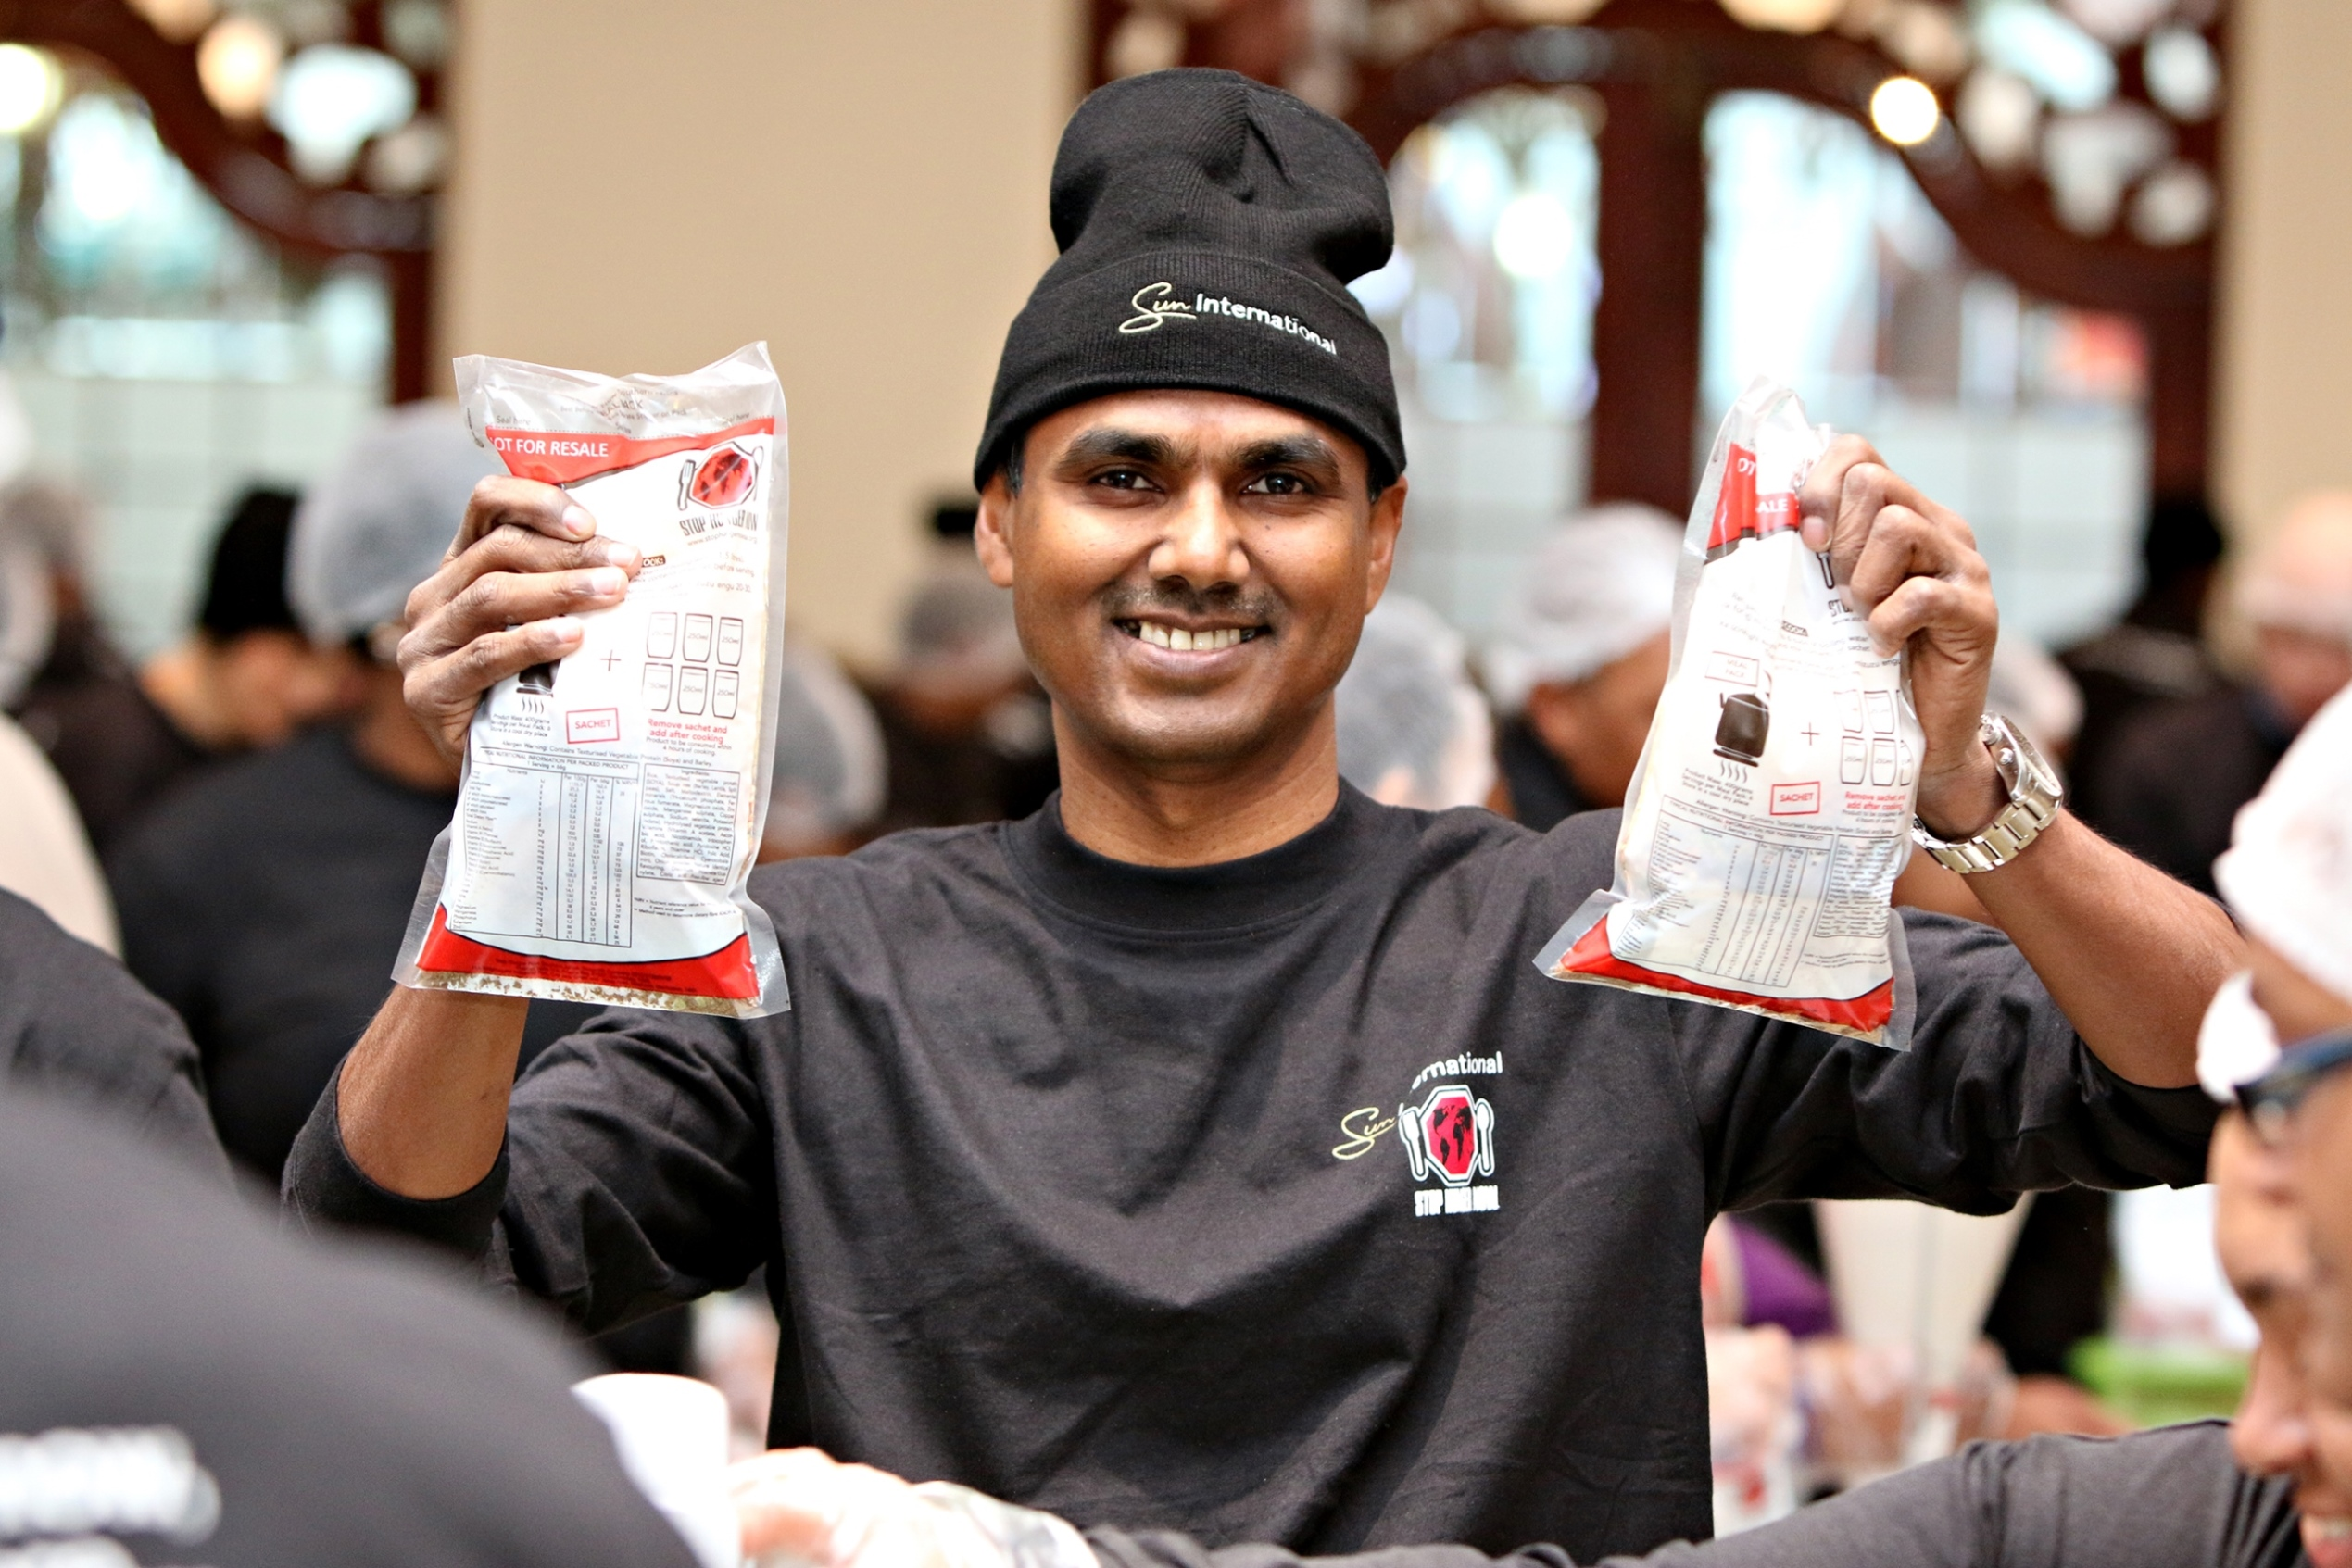 2015 Stop Hunger Now campaign with Mervyn Naidoo, GM at Sun International's GrandWest Casino